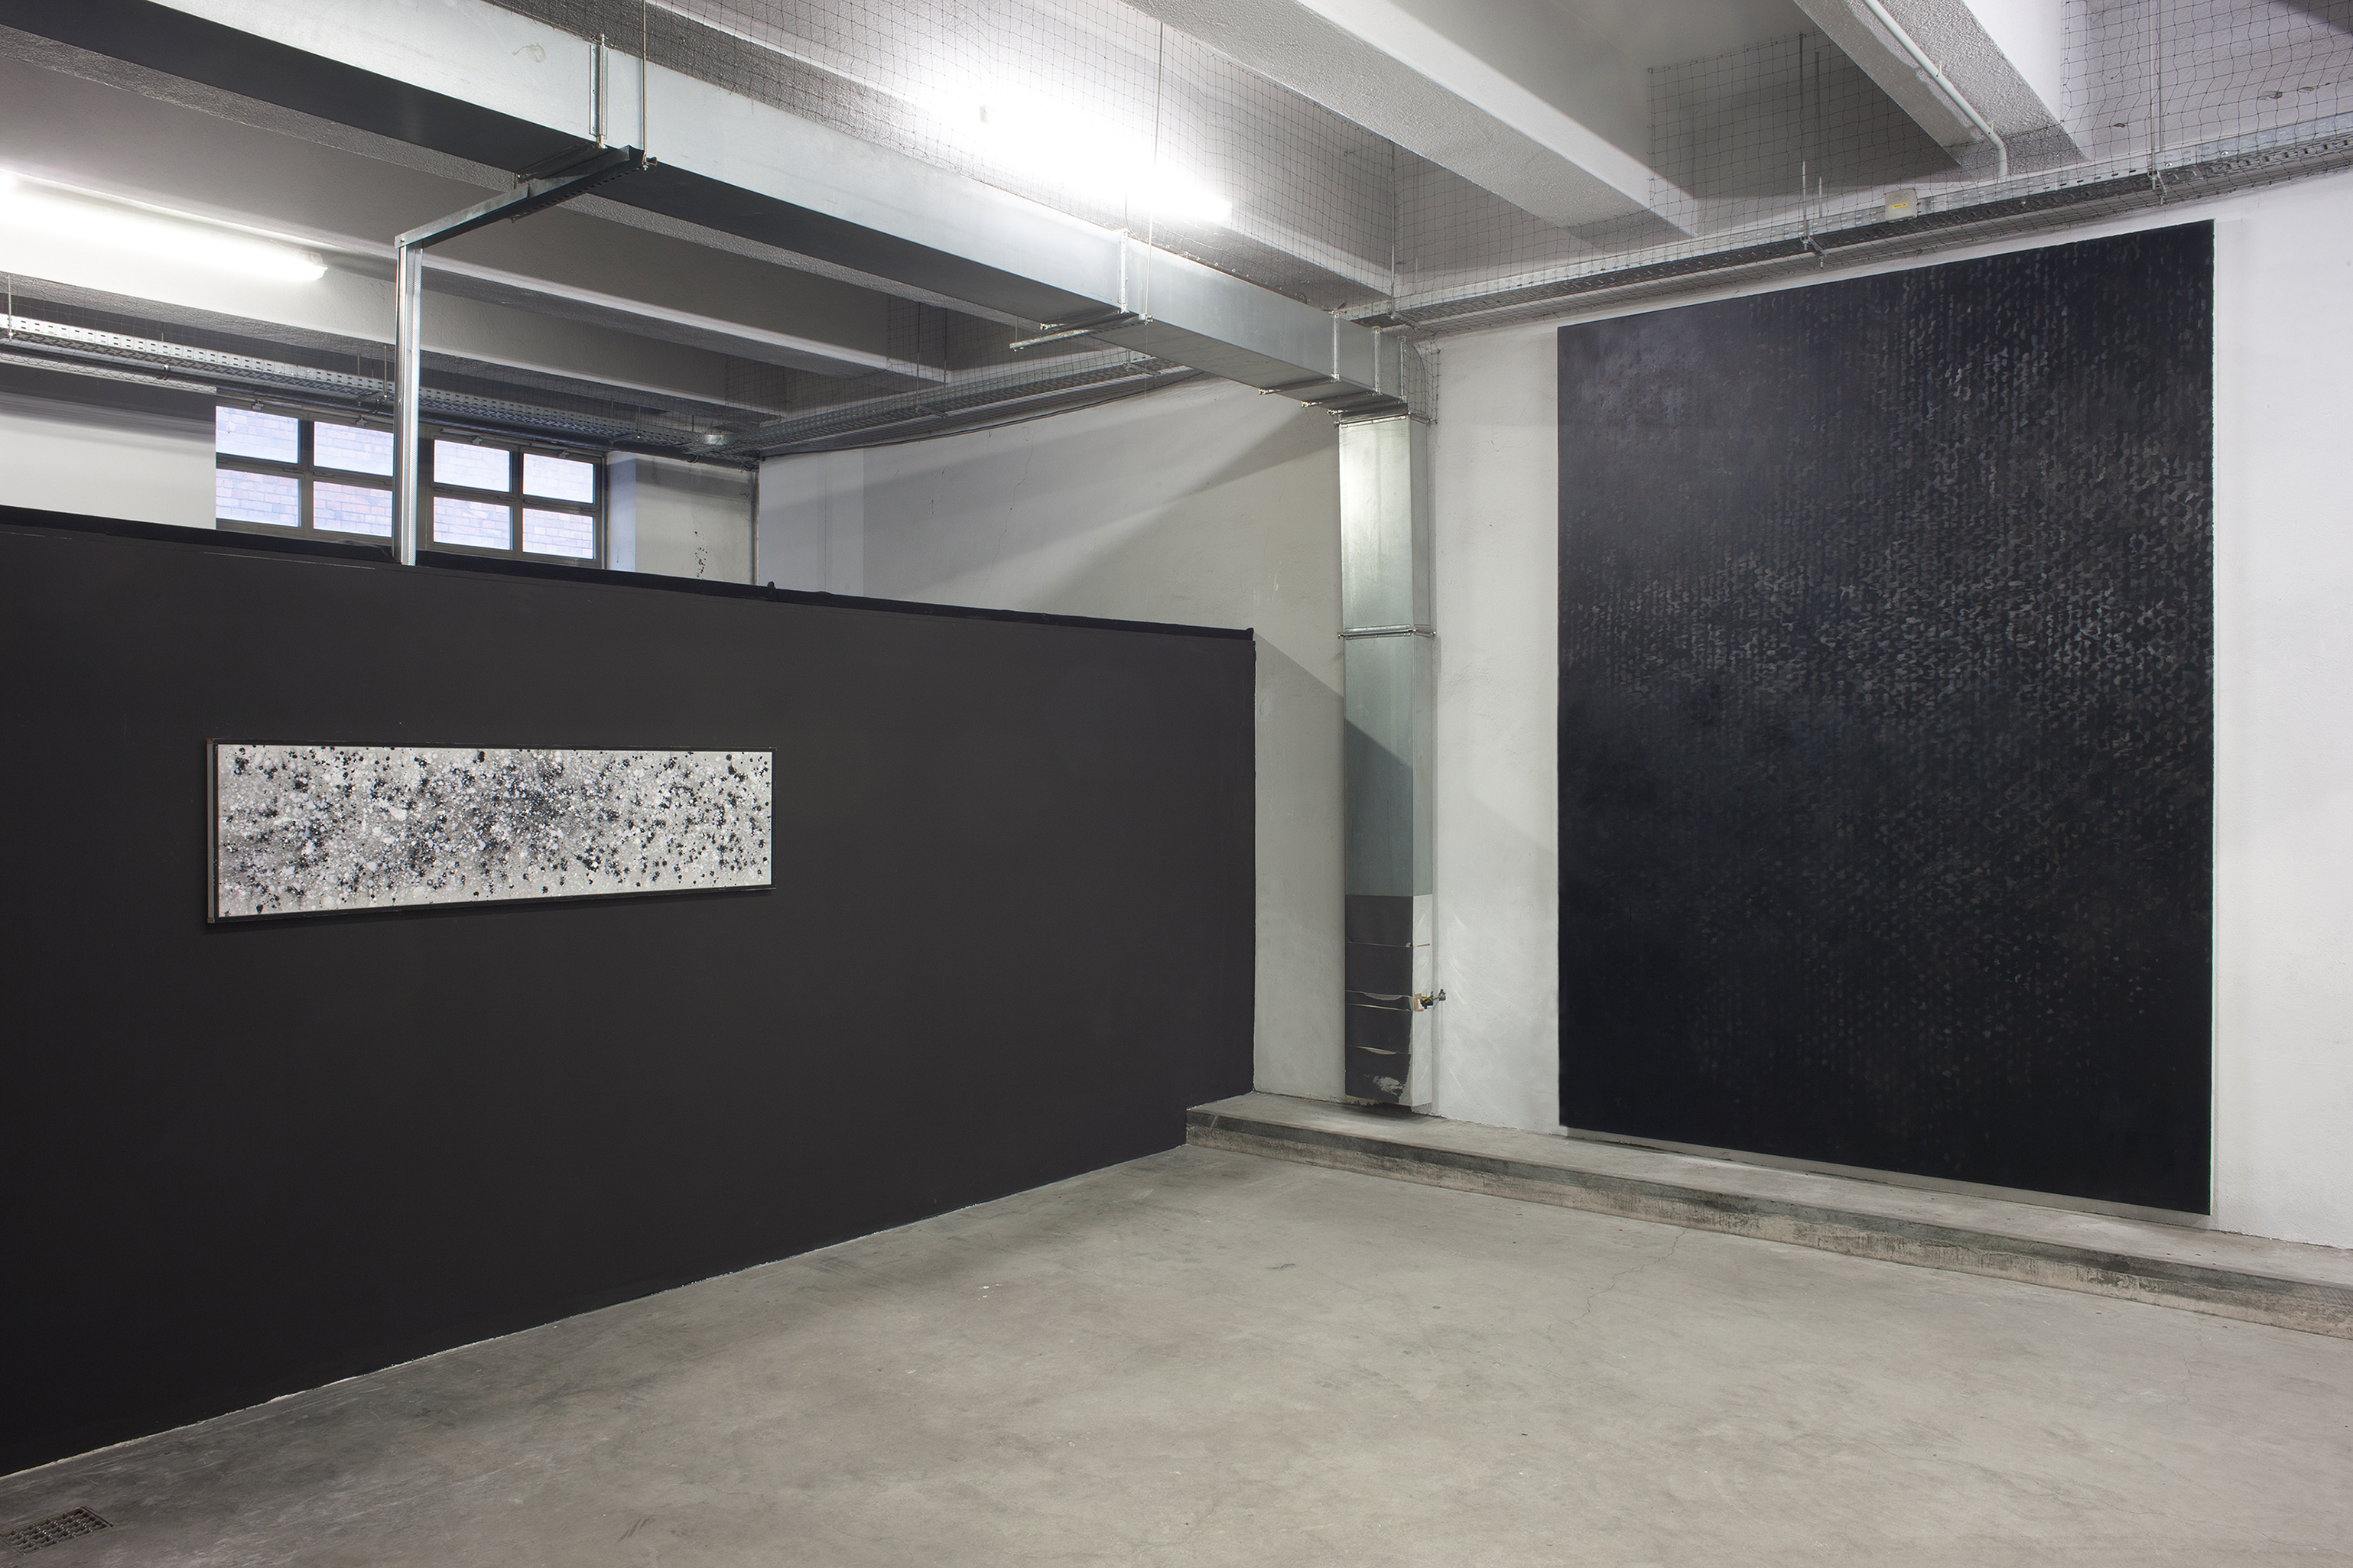 Canvas 01 - black painting by Erik Andersen - installation view from a group exhibition in Berlin